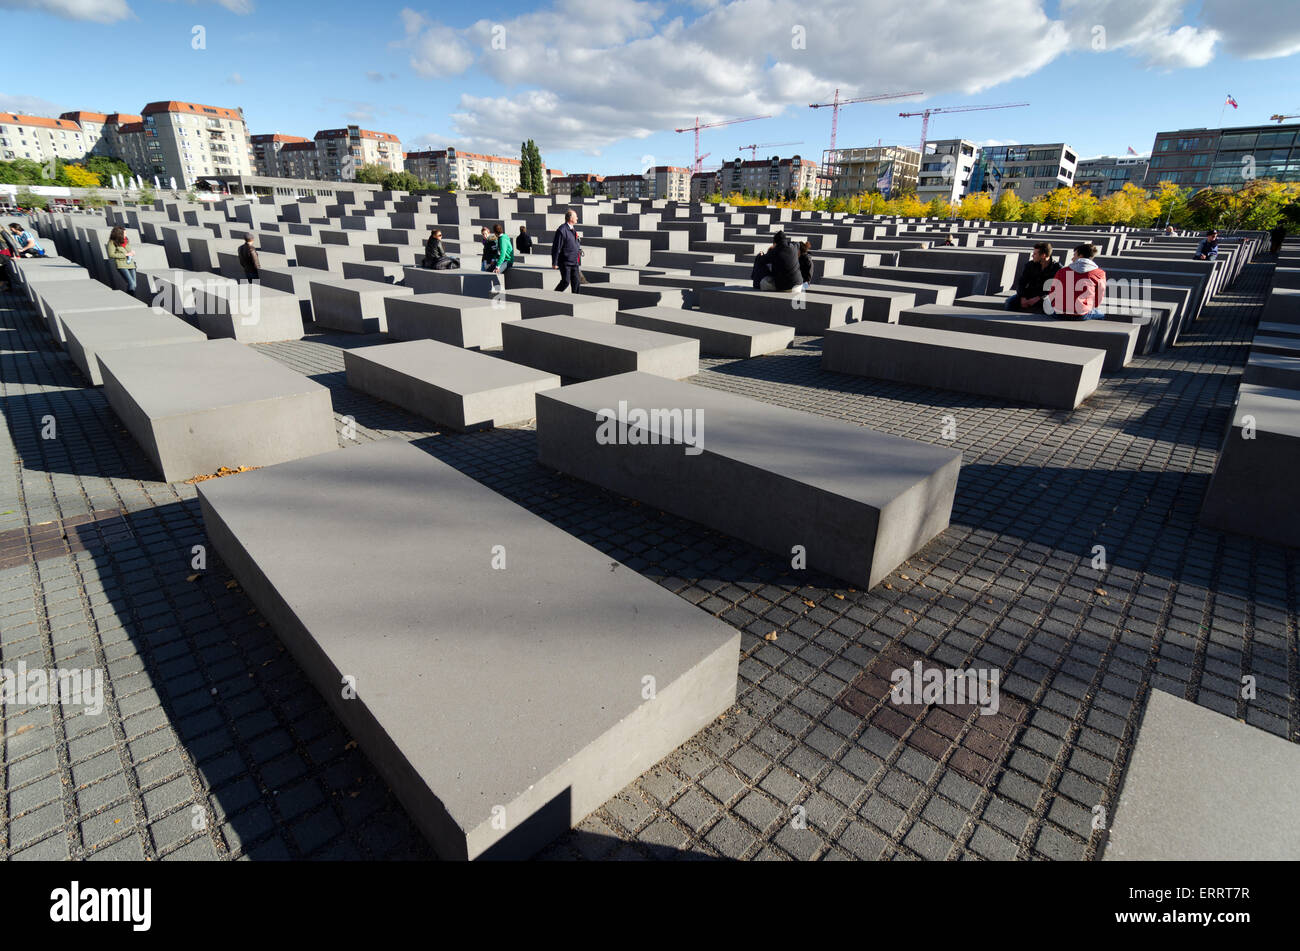 BERLIN, GERMANY - SEPTEMBER 29, 2013: The Memorial to the Murdered Jews of Europe also known as the holocaust memorial. - Stock Image